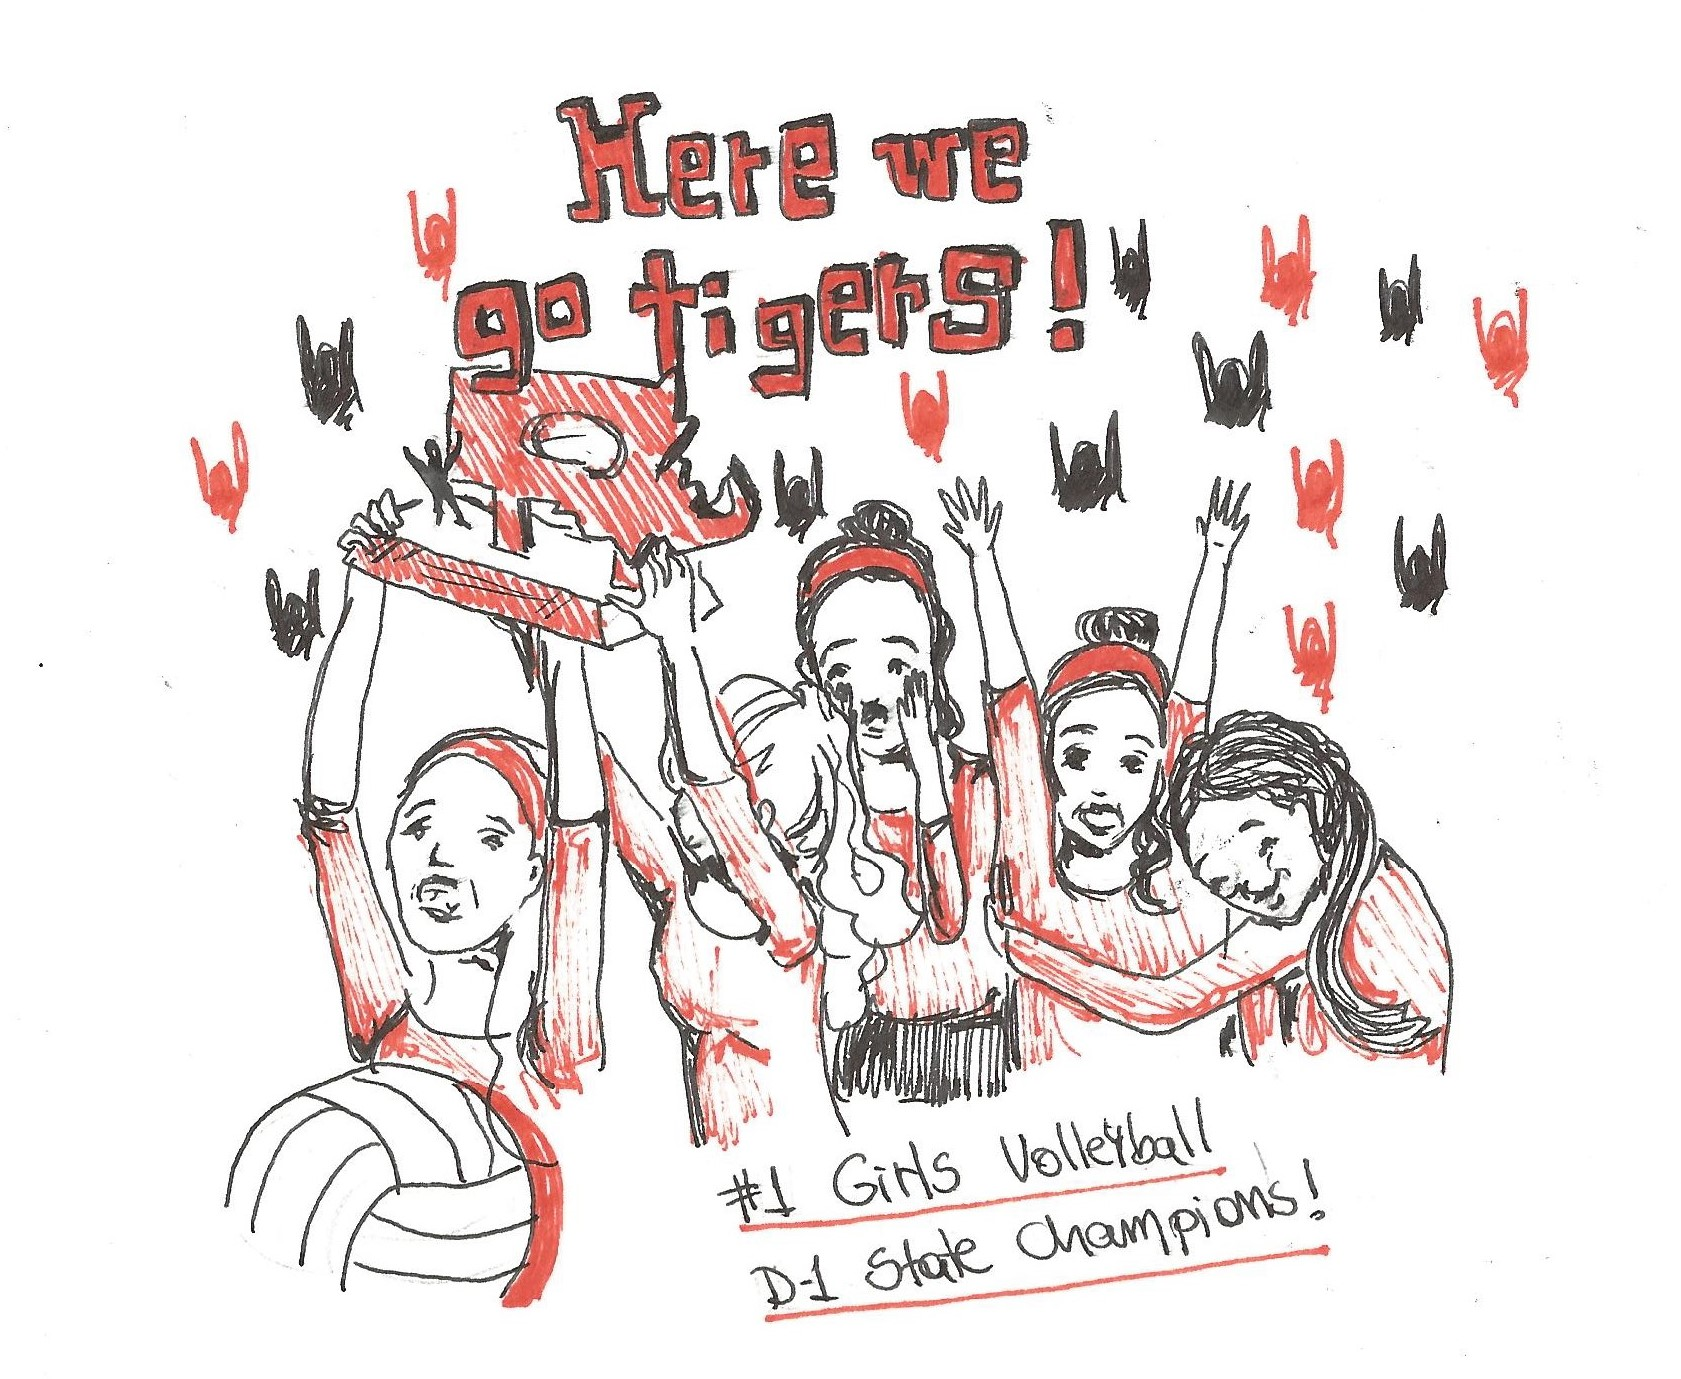 Congratulations to girls' volleyball, who won the State Tournament on Saturday! Cartoon by Maria Melissa and Mary Solovyeva.